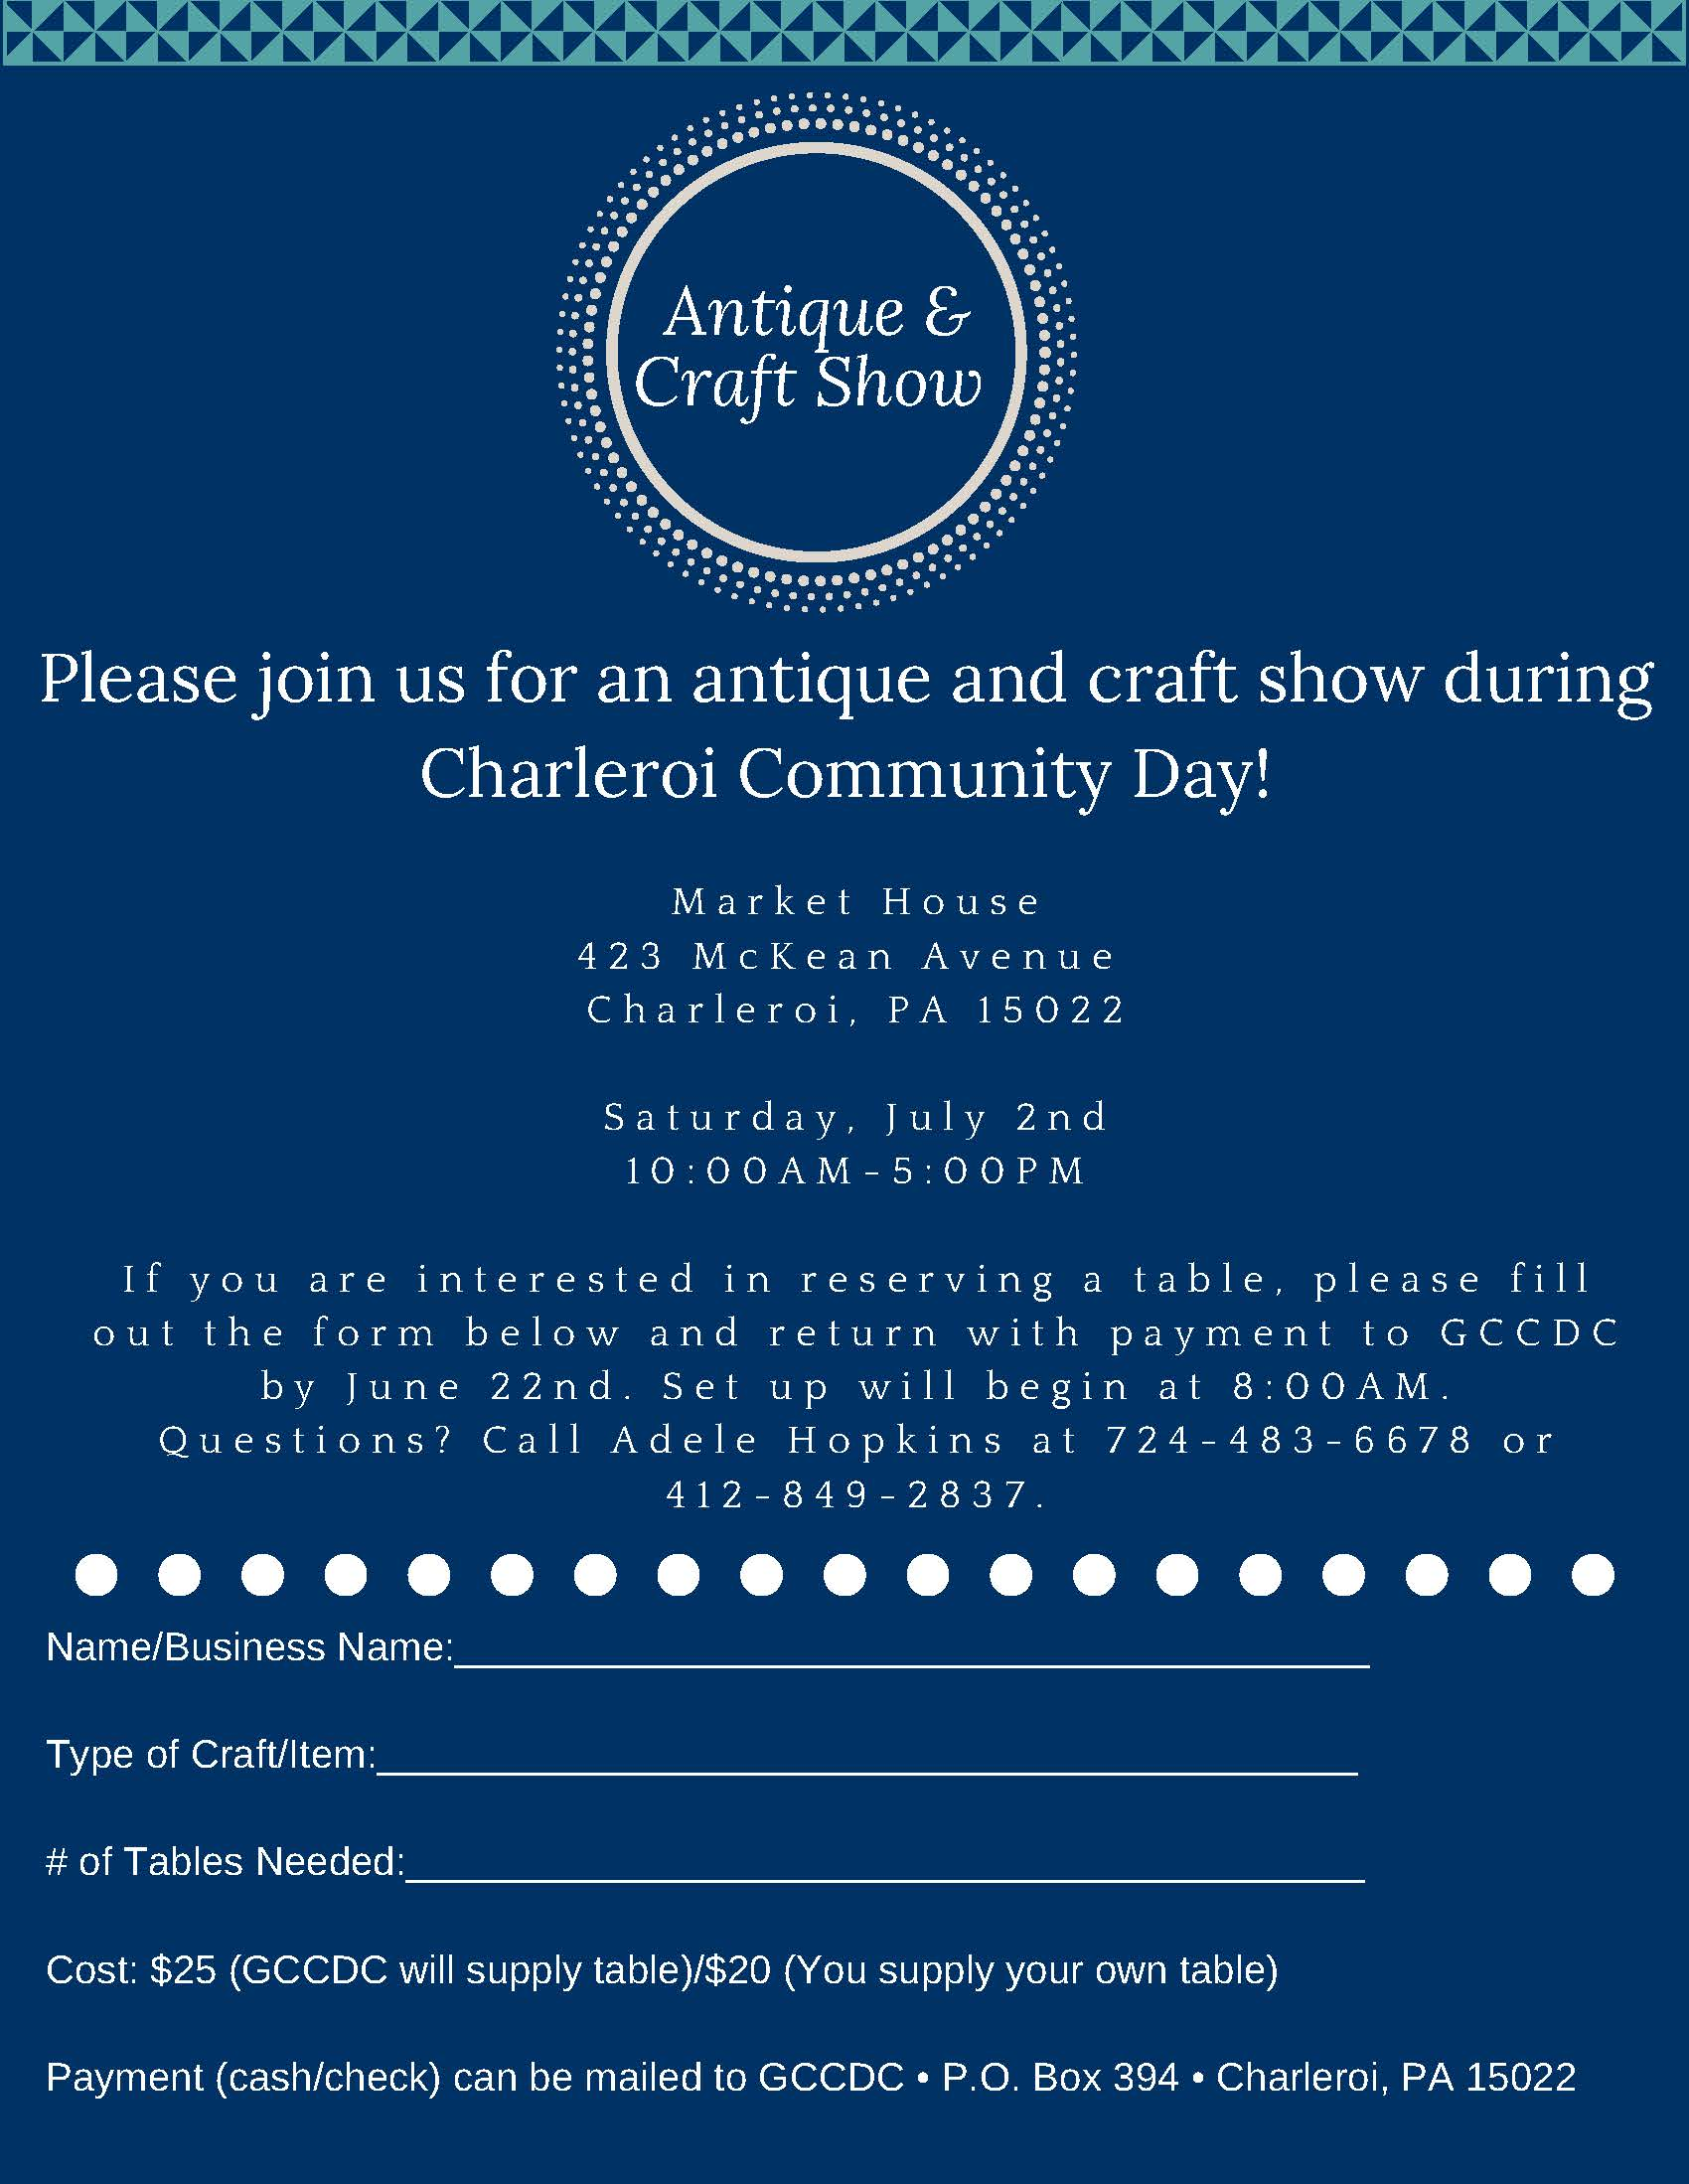 GCCDC Craft Show Flyer 2016_Page_1